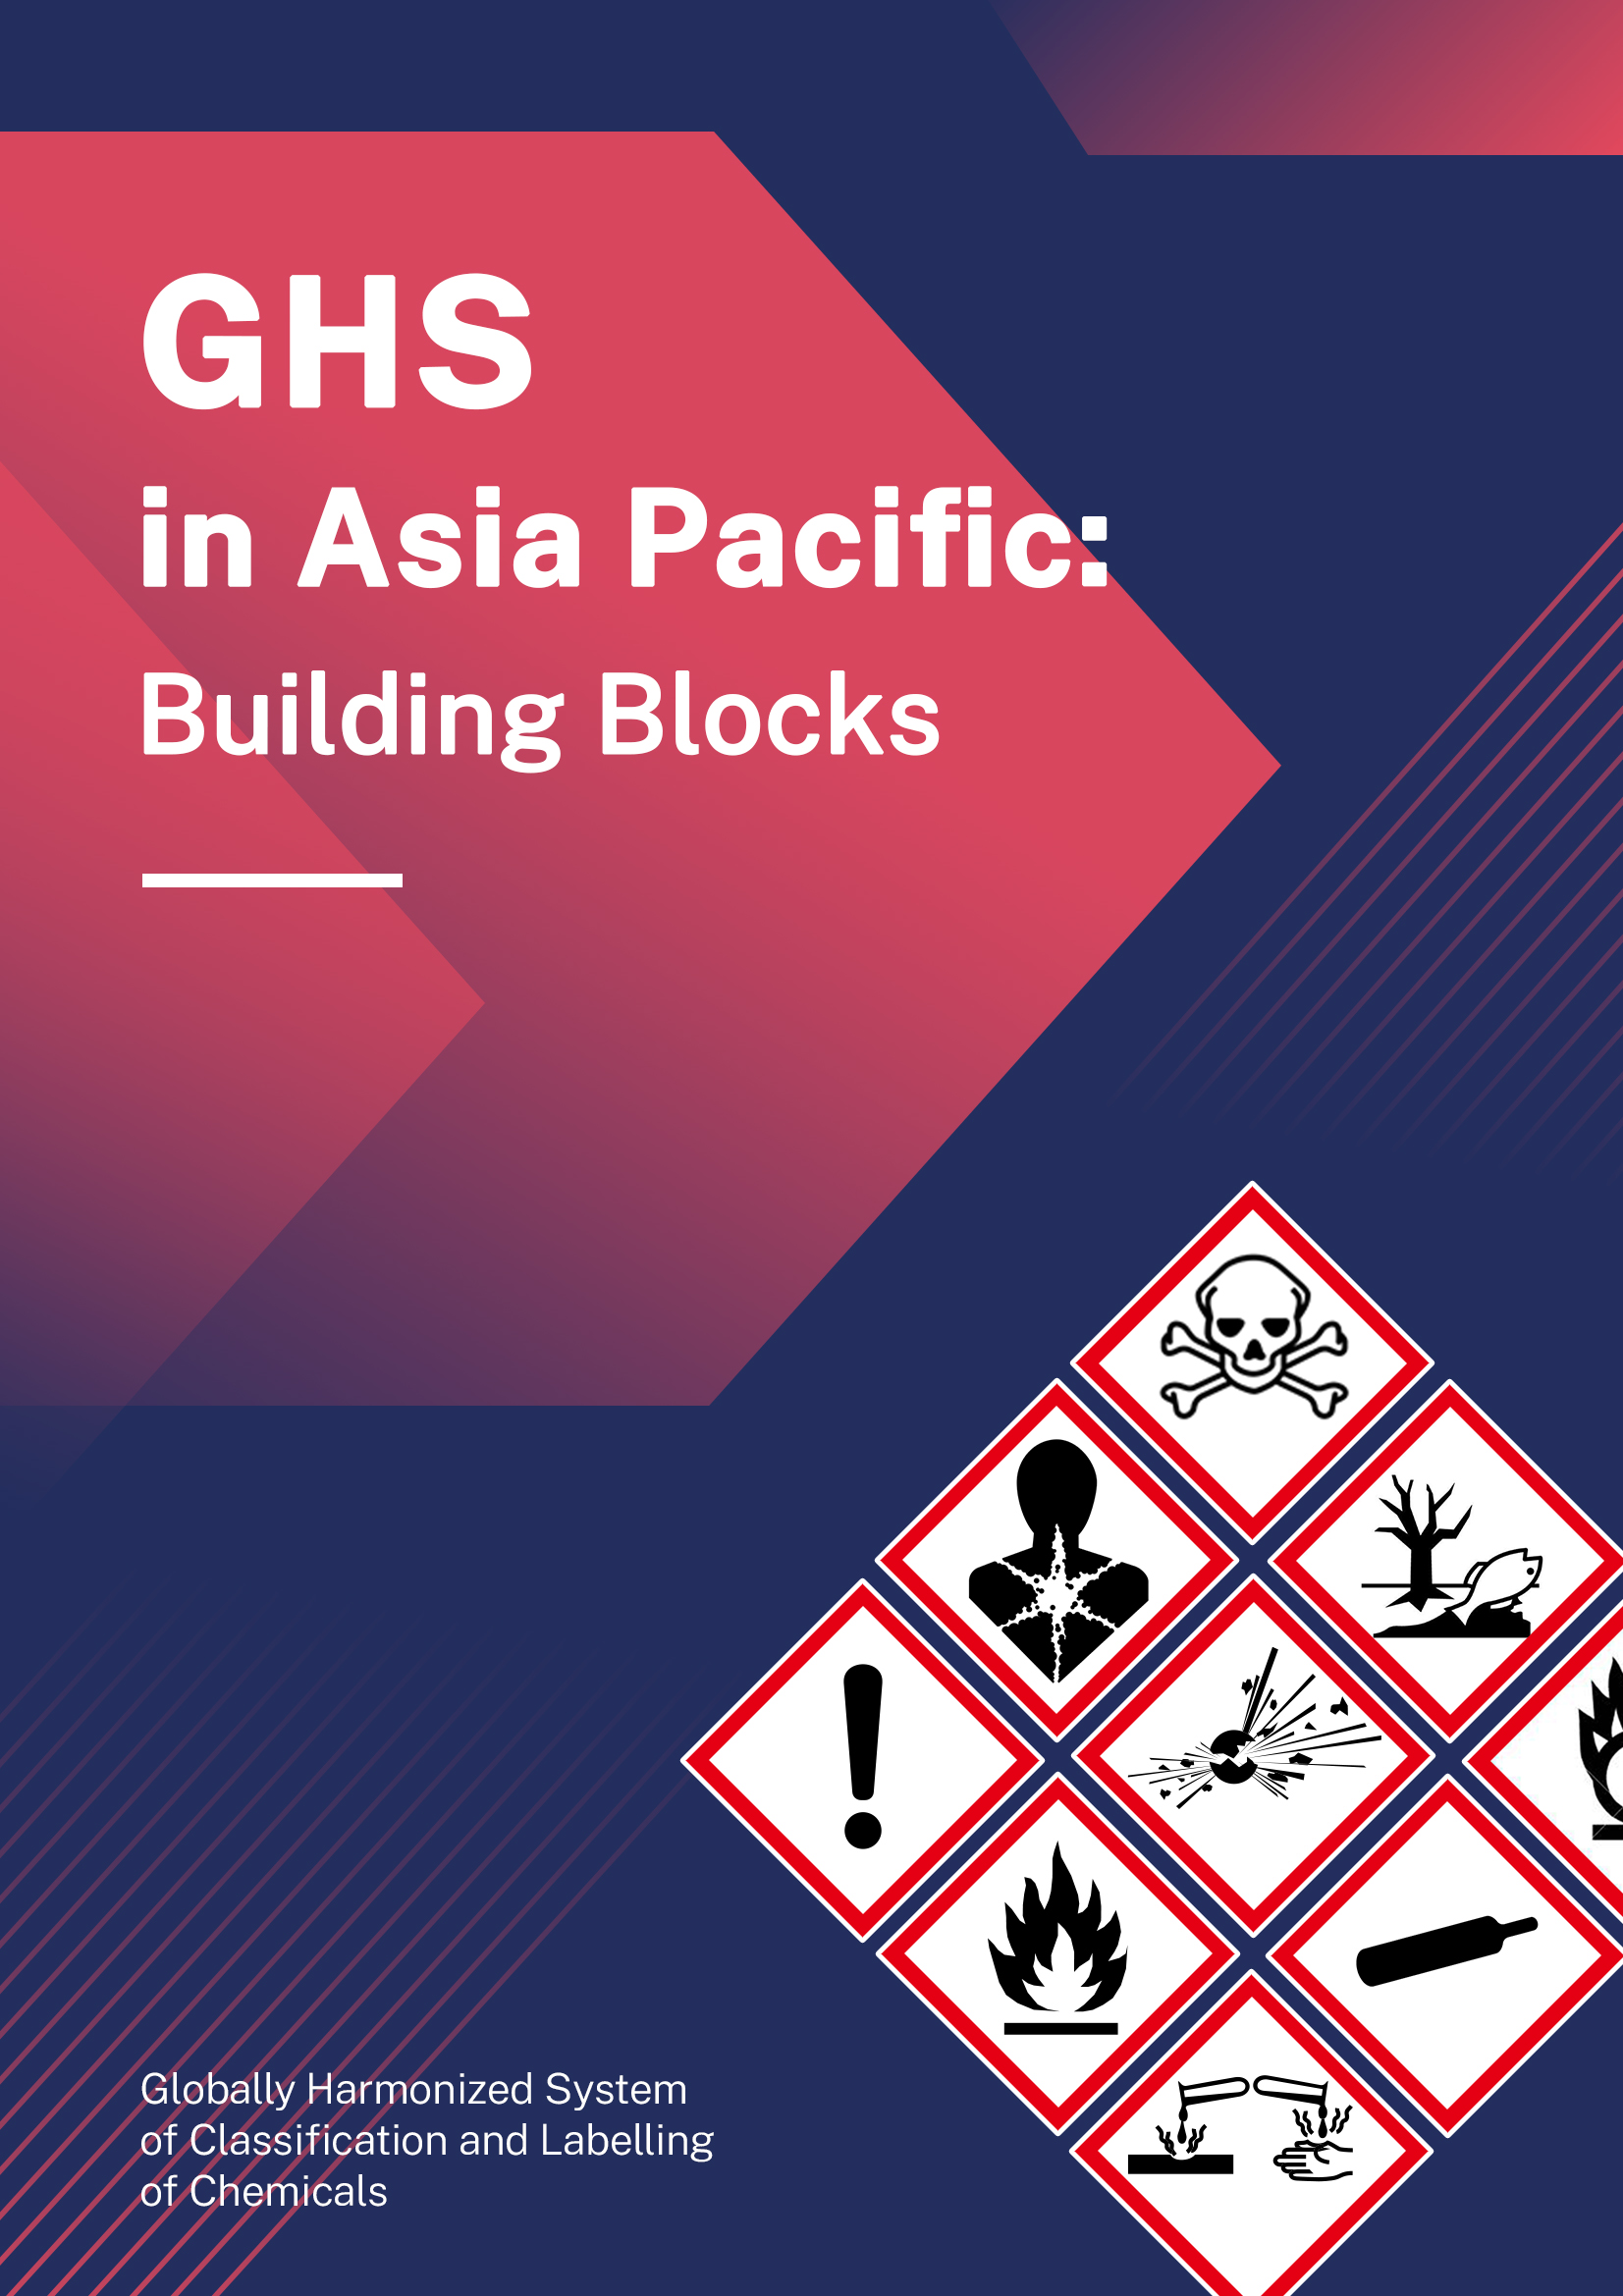 GHS in Asia Pacific: Building Blocks